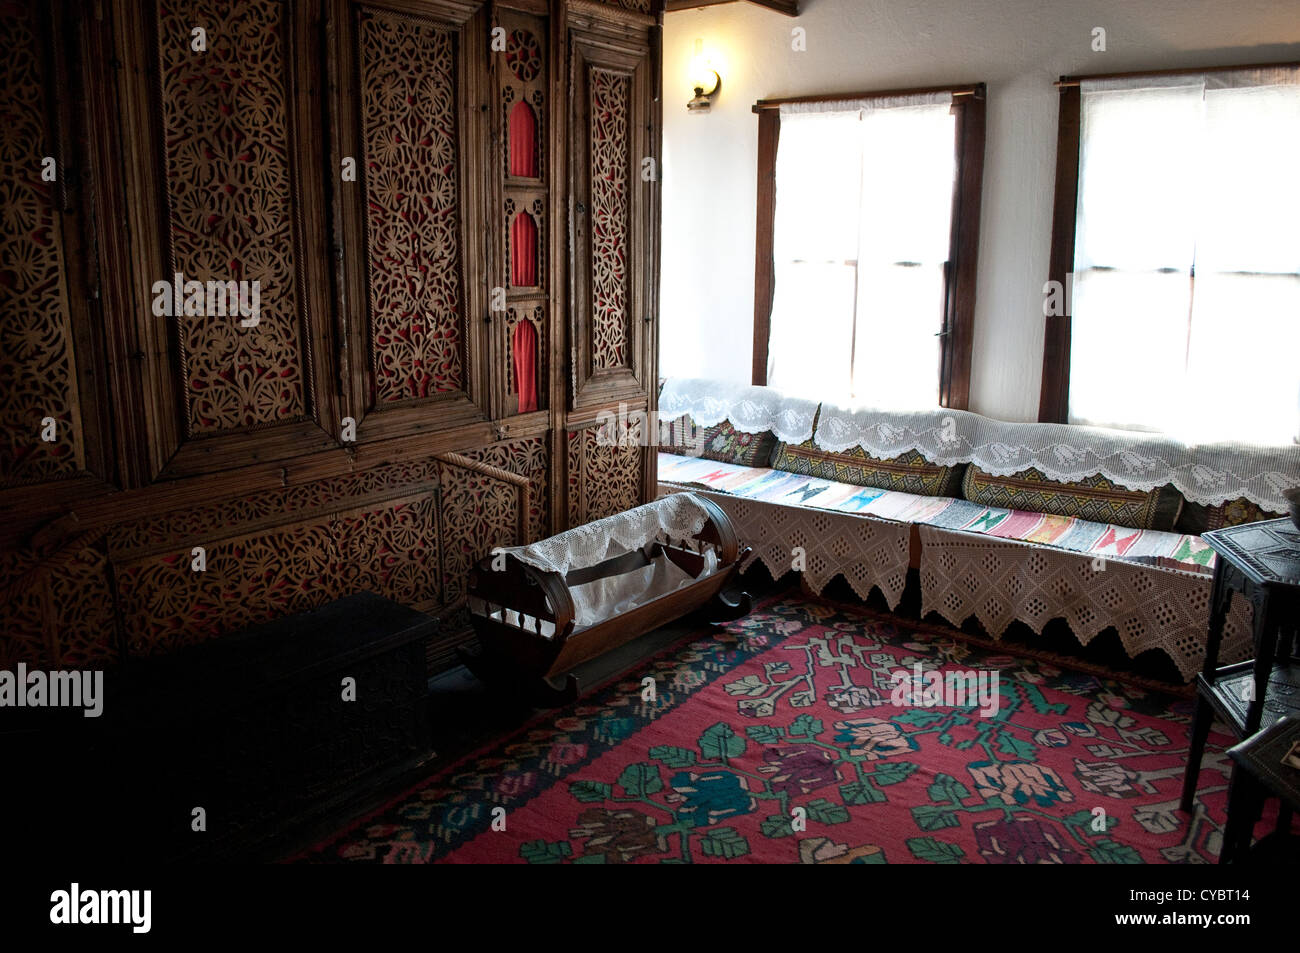 Interior of birth house of Noble laureate Ivo Andric, Travnik, Bosnia and Herzegovina - Stock Image